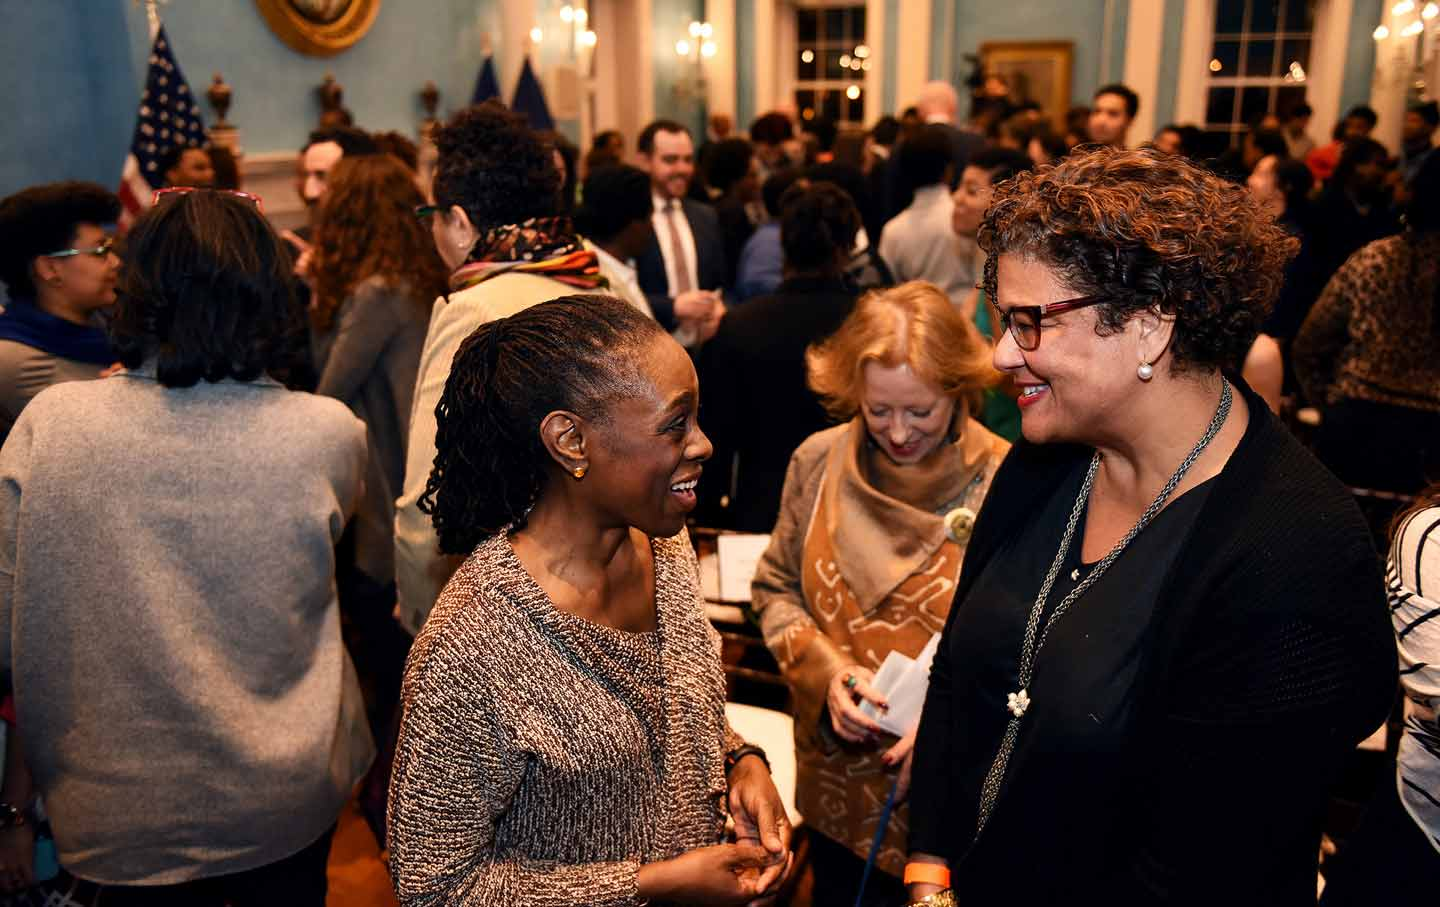 NYC first lady Chirlane McCray